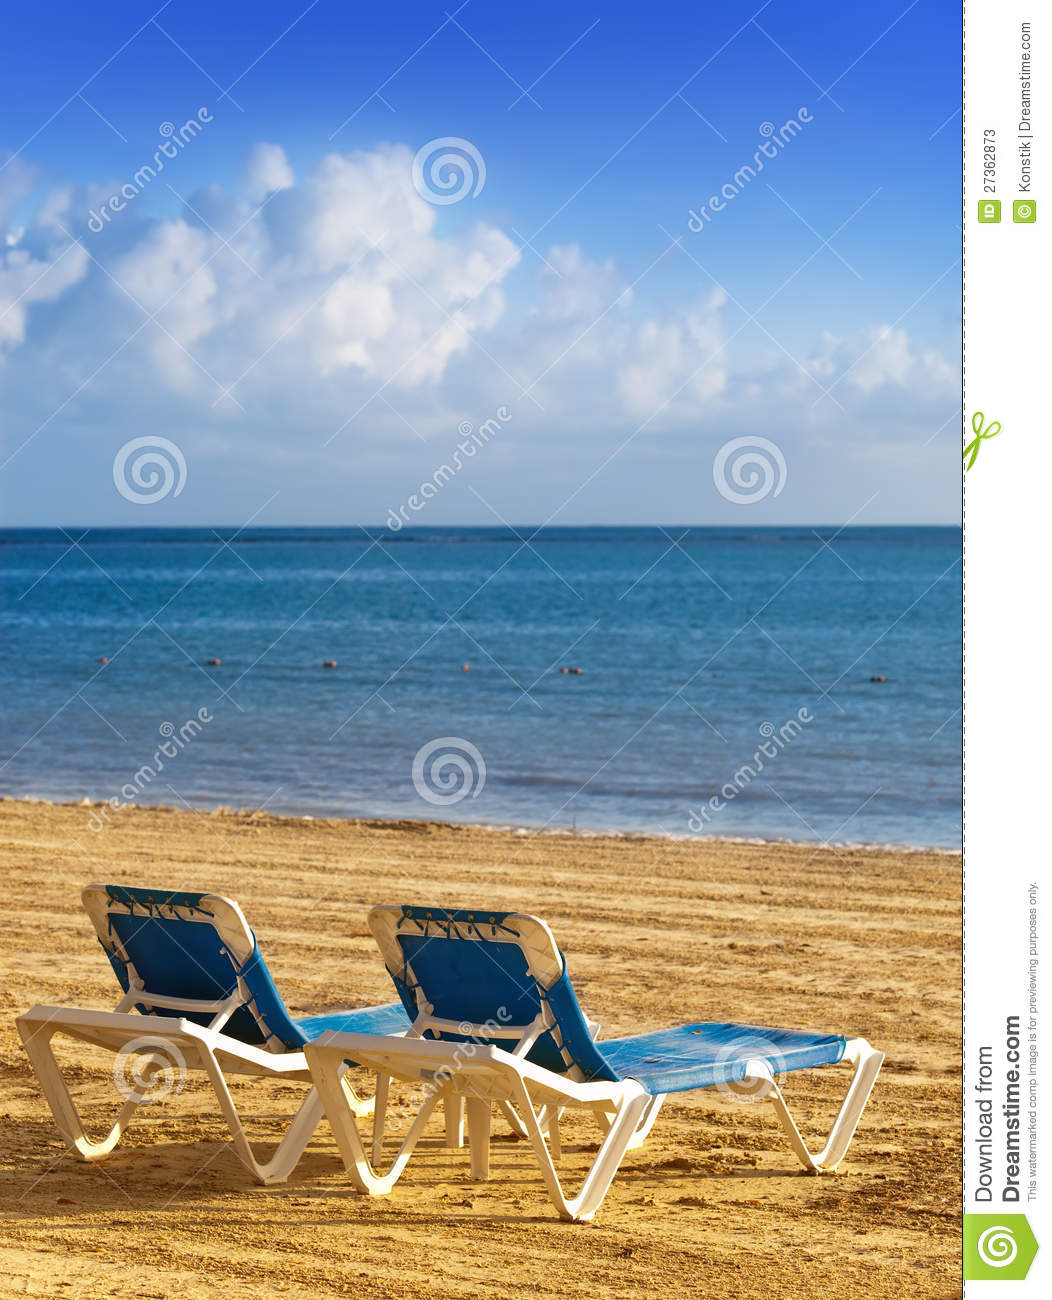 Chaise lounges on a beach landscape stock photos image for Beach chaise longue